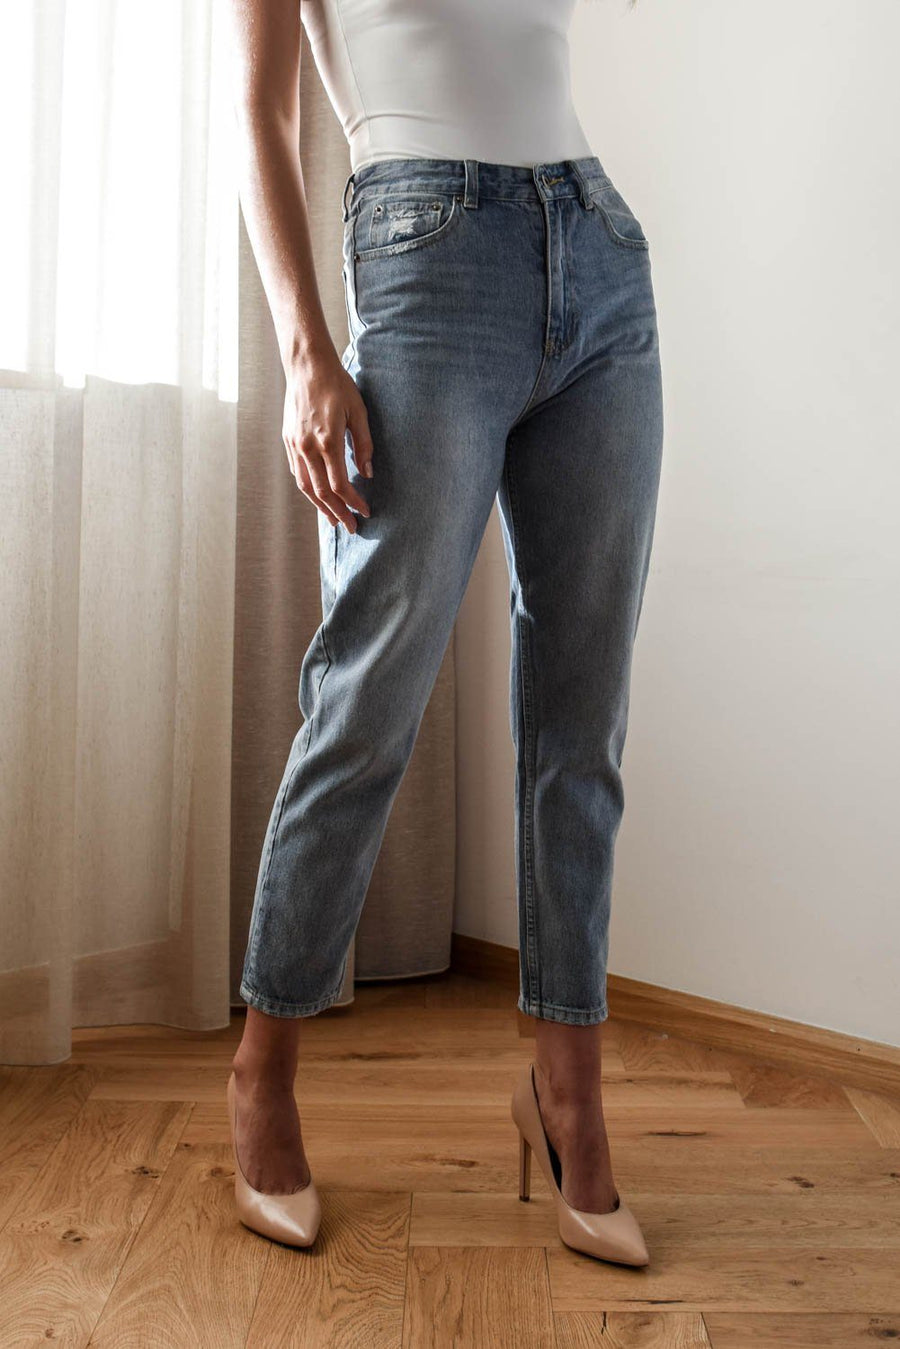 Silvi Denim Wash Jeans Bottoms The Lust Label